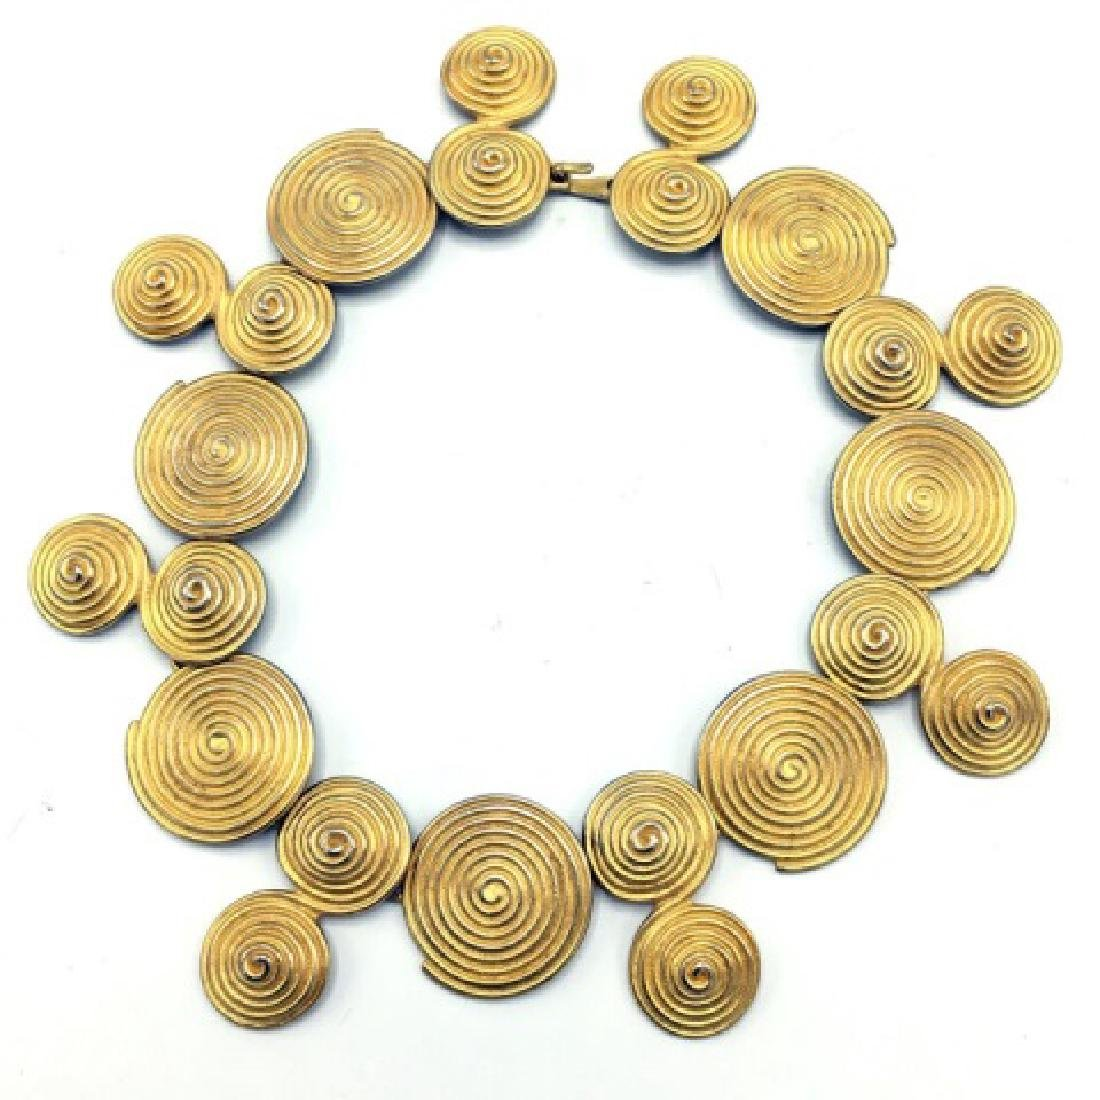 Costume Jewelry - Vintage 1980s Gold Tone Necklace - 2